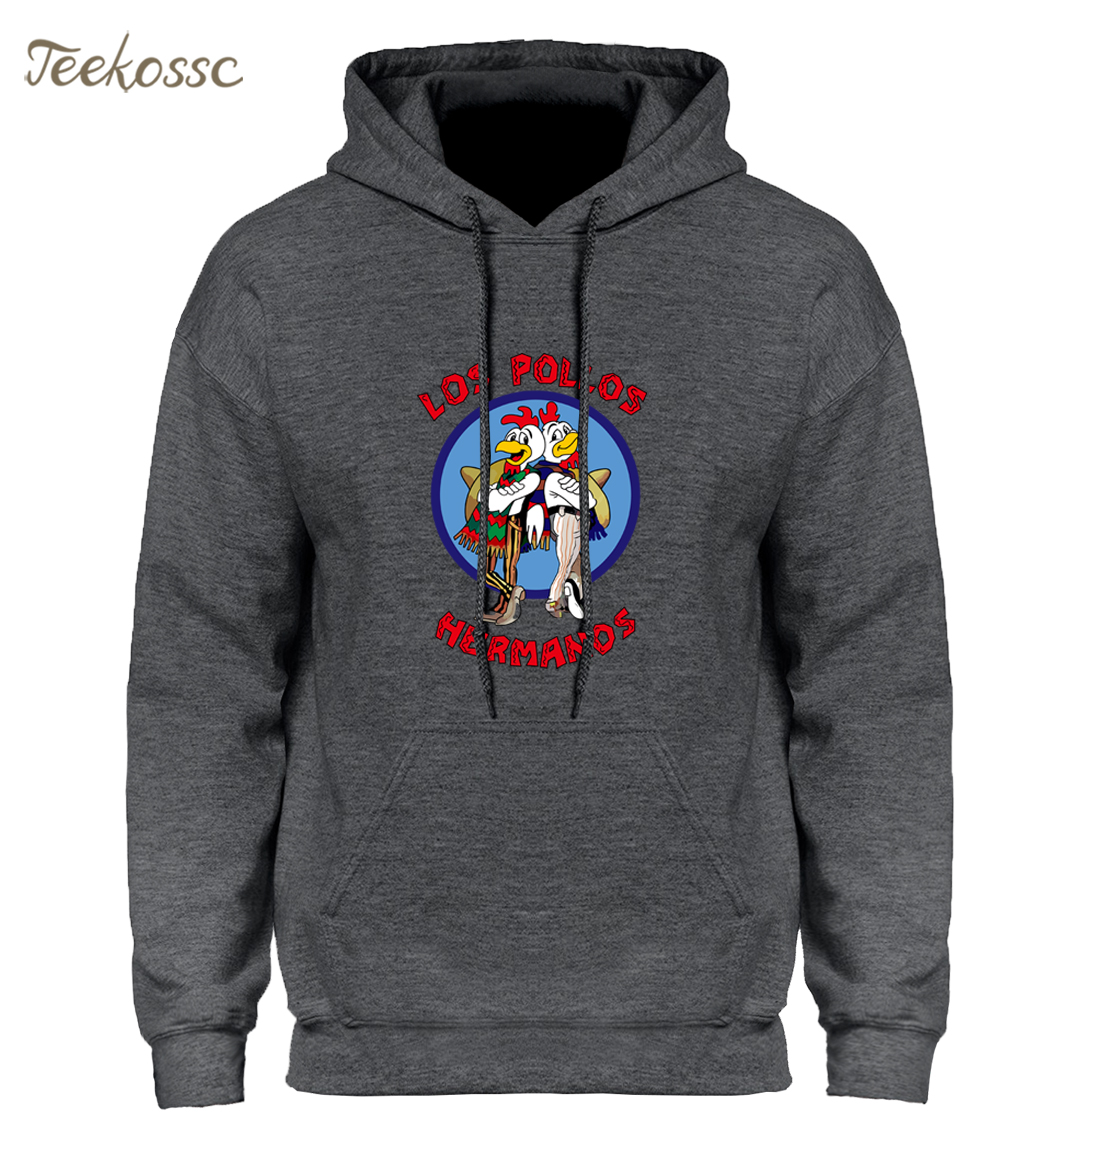 Breaking Bad Hoodie Men LOS POLLOS Hermanos Hooded Sweatshirt Chicken Brothers Hoodies Mens 2018 Winter Autumn Swag Hoody Men's